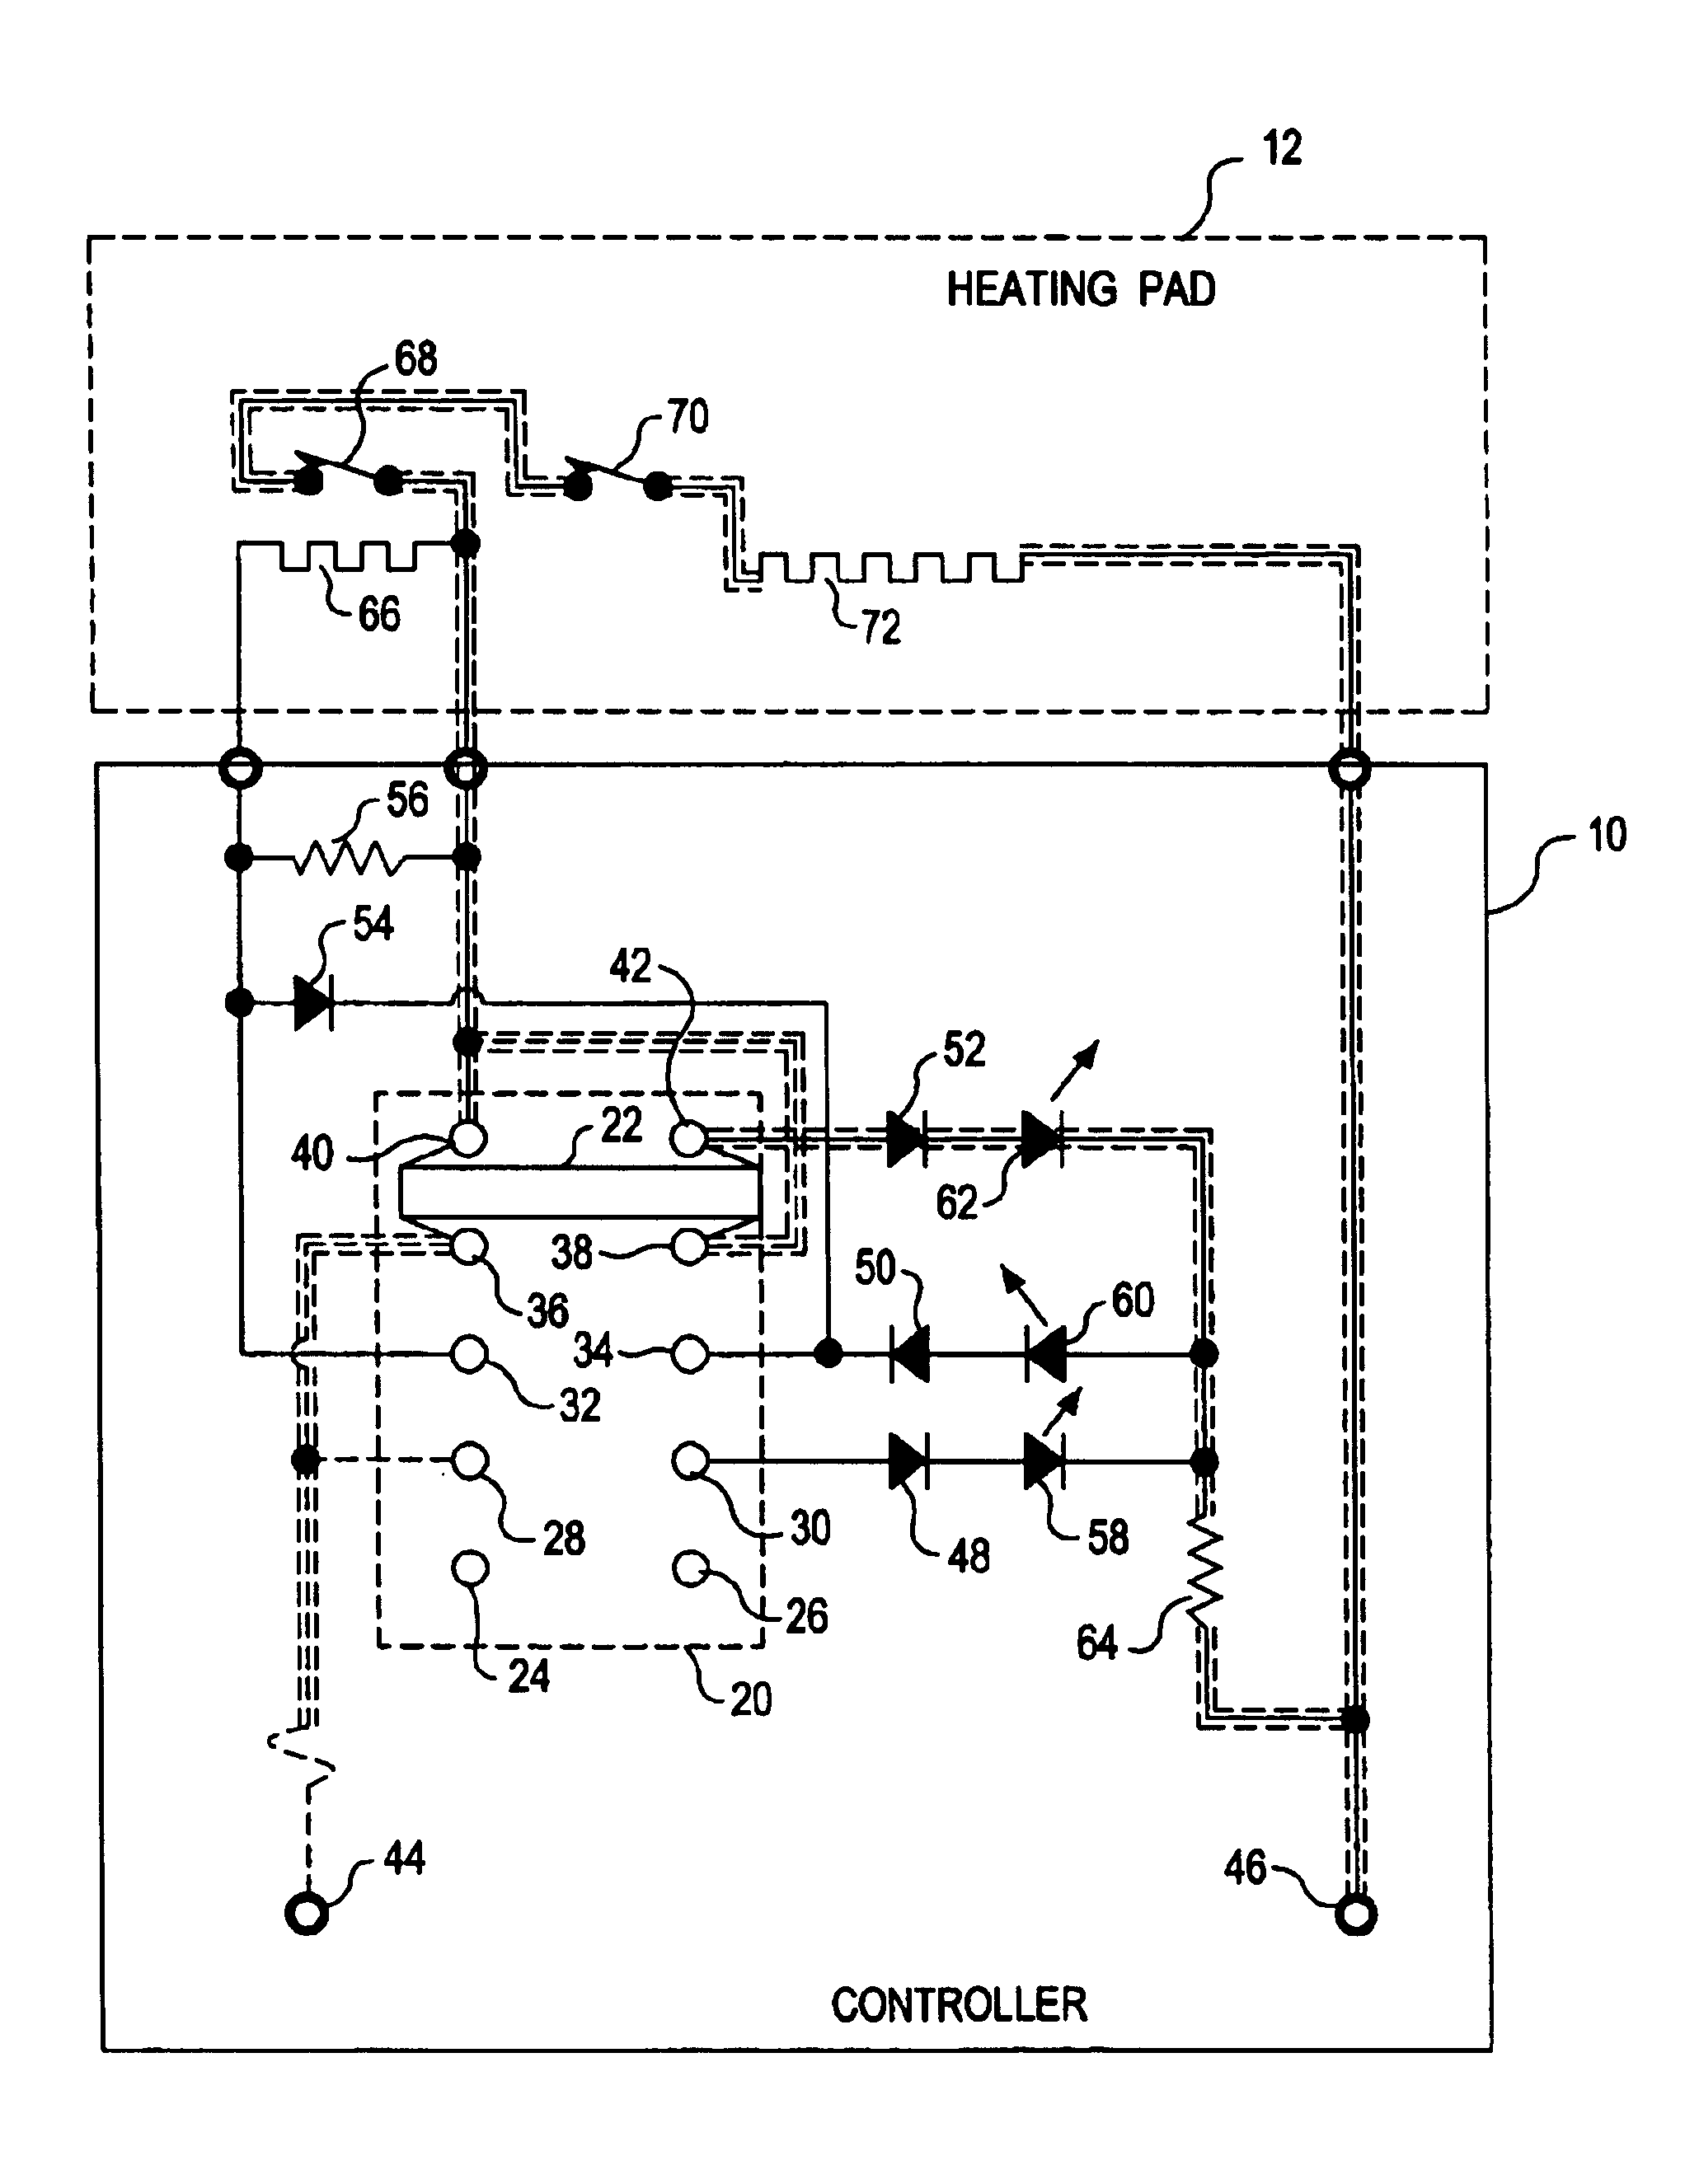 Patent Us6884973 - Heating Pad Controller With Multiple Position Switch And Diodes